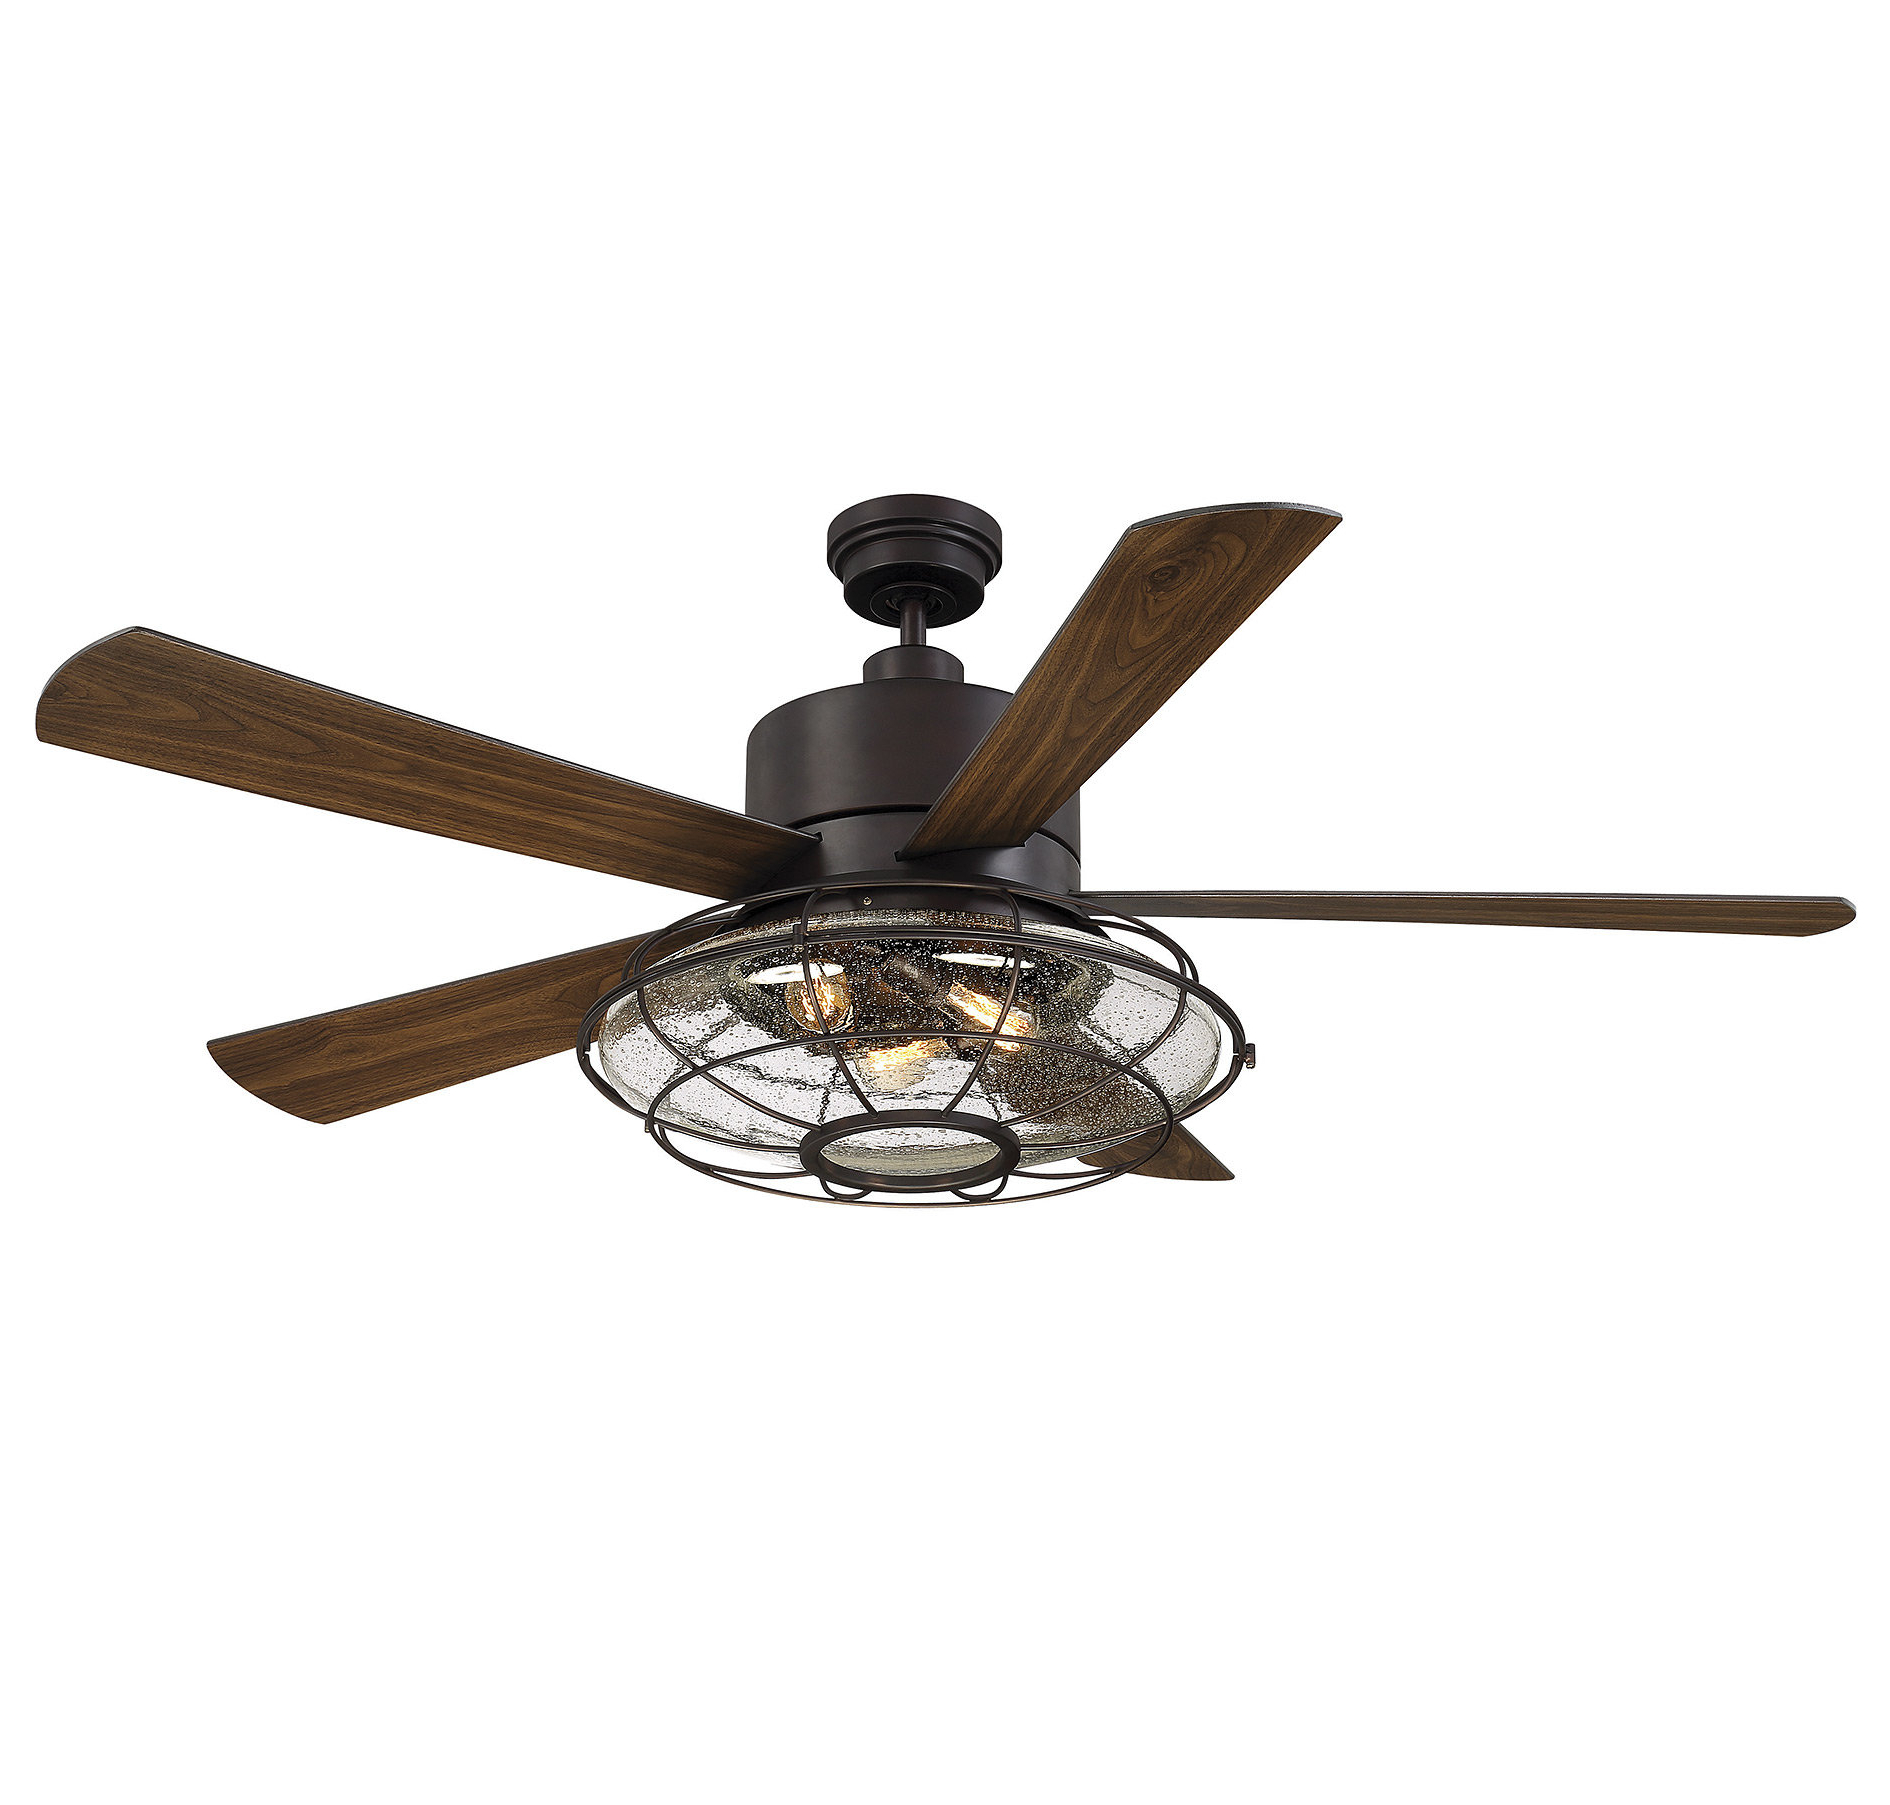 "Most Recent Glenpool 5 Blade Ceiling Fans For 56"" Roberts 5 Blade Ceiling Fan With Remote Control, Light Kit Included (View 8 of 20)"